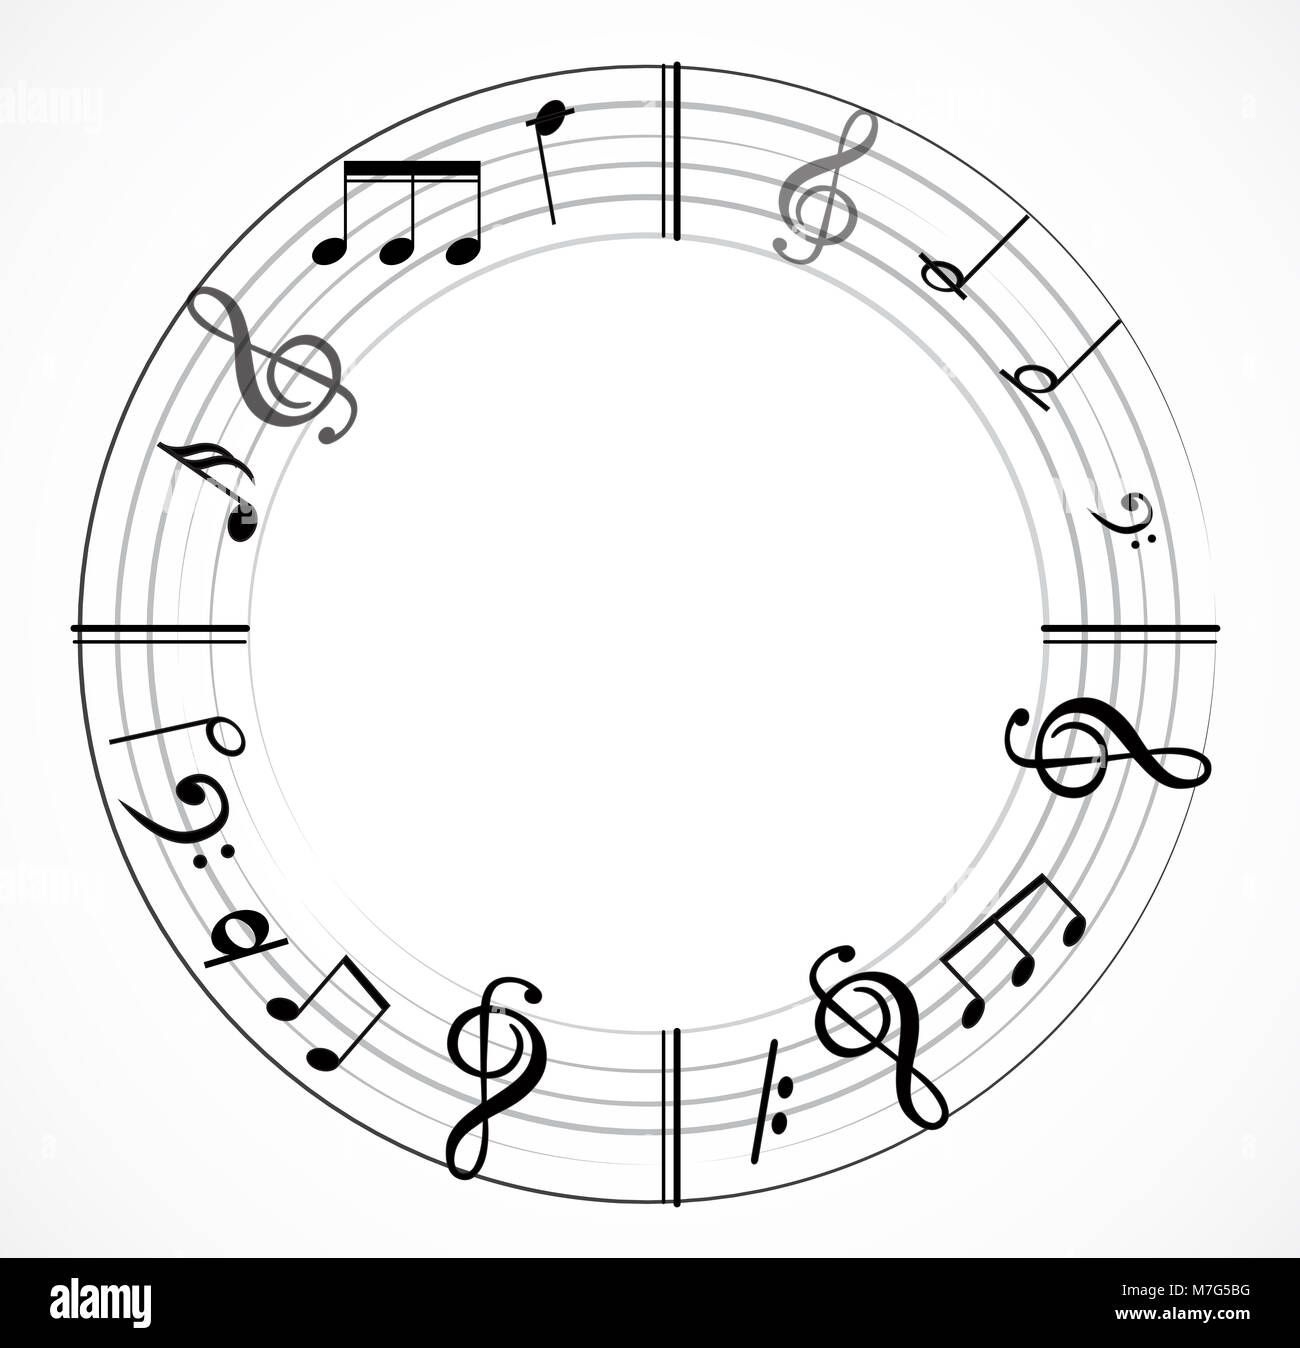 Music Note Background With Different Music Symbols Stock Photo